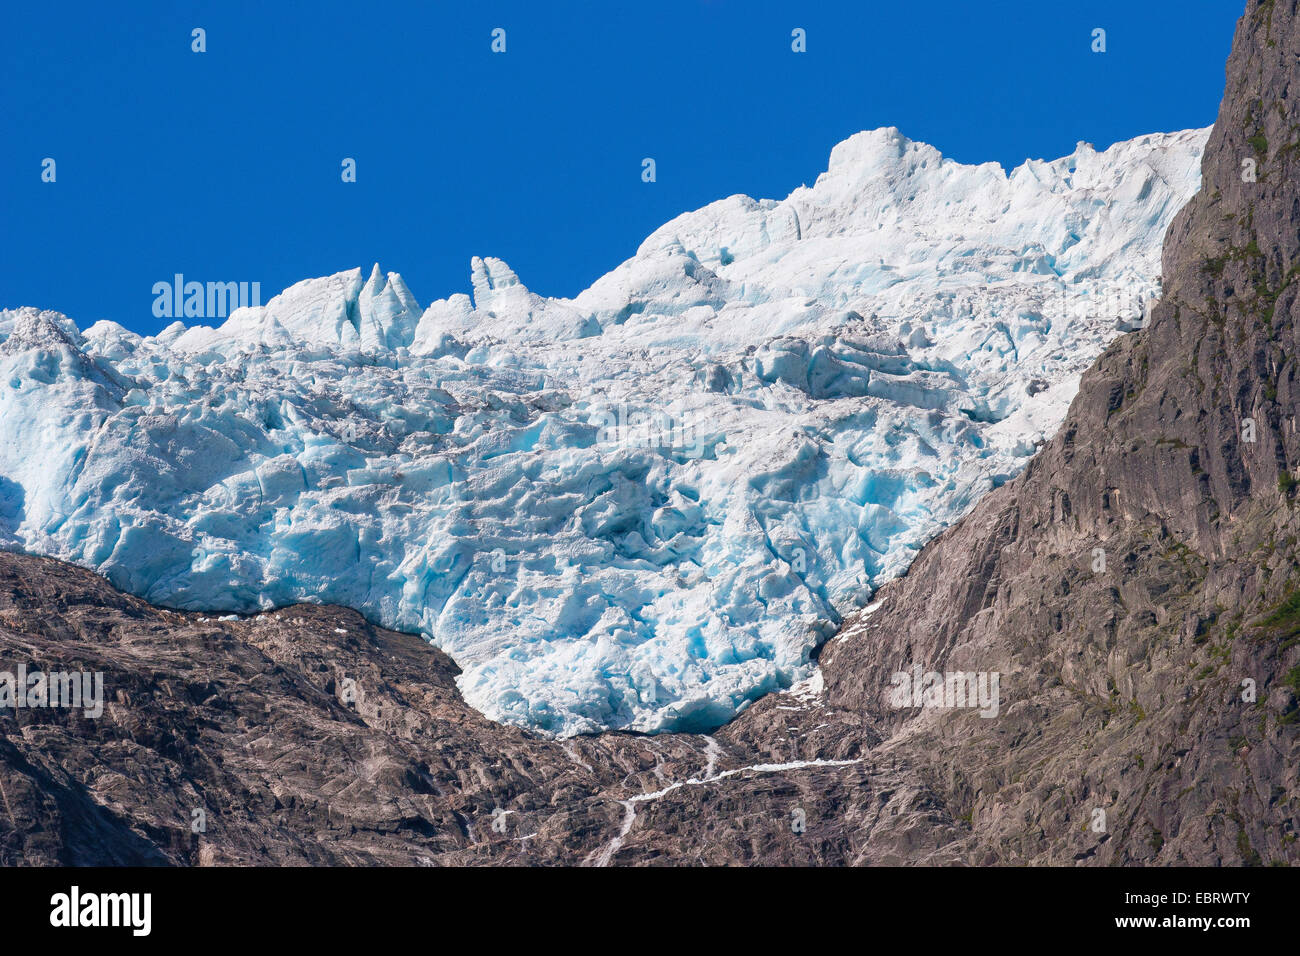 Jostedalsbreen glacier, Norway, Jostedalsbreen National Park, Supphella - Stock Image